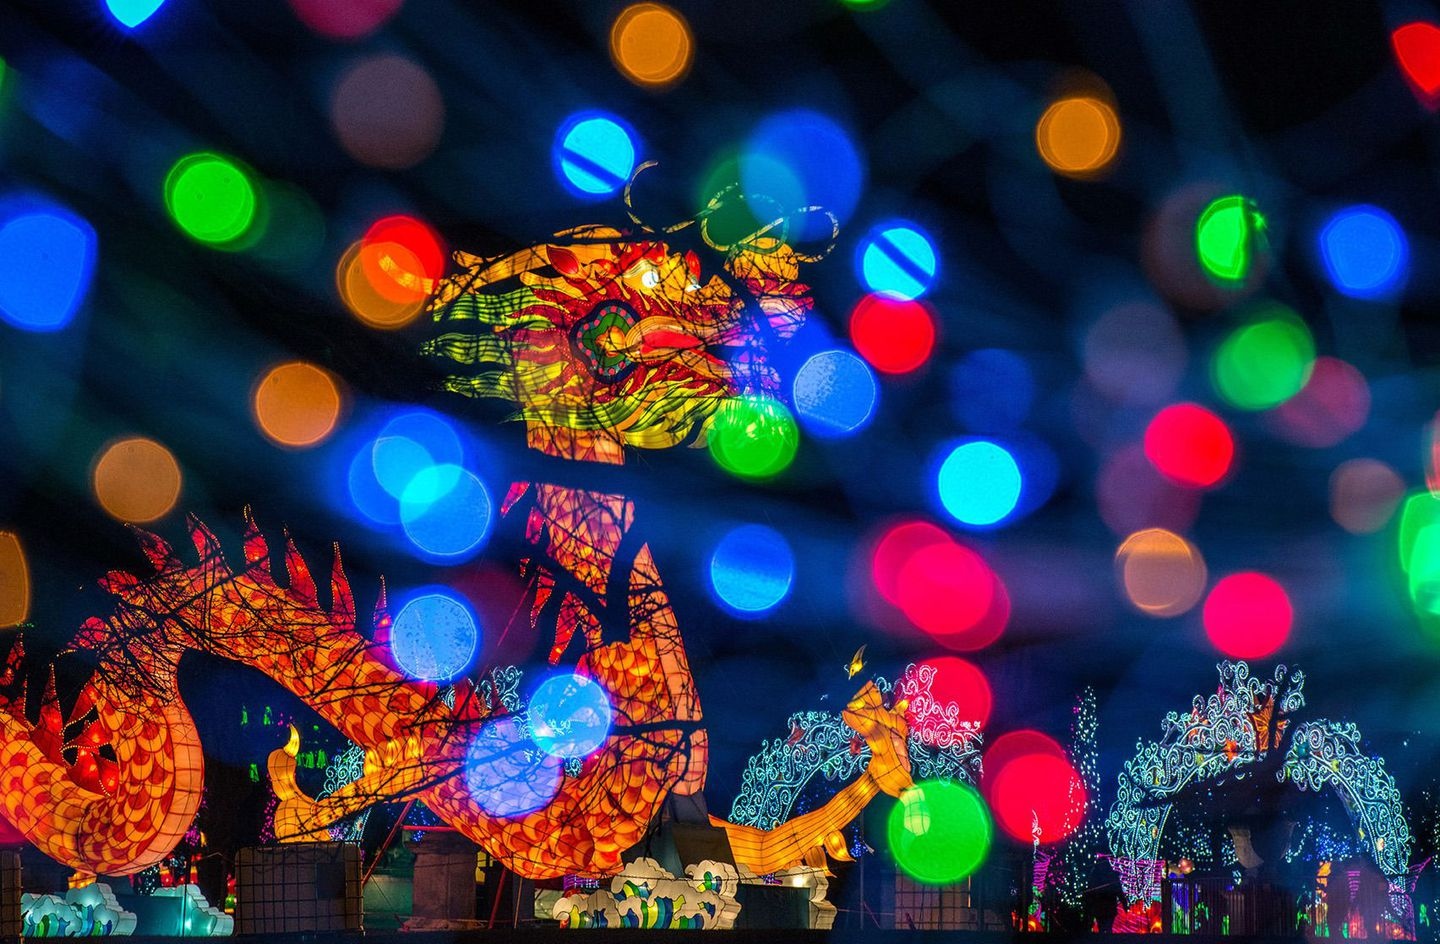 magic lantern festival london for chinese new year 2016